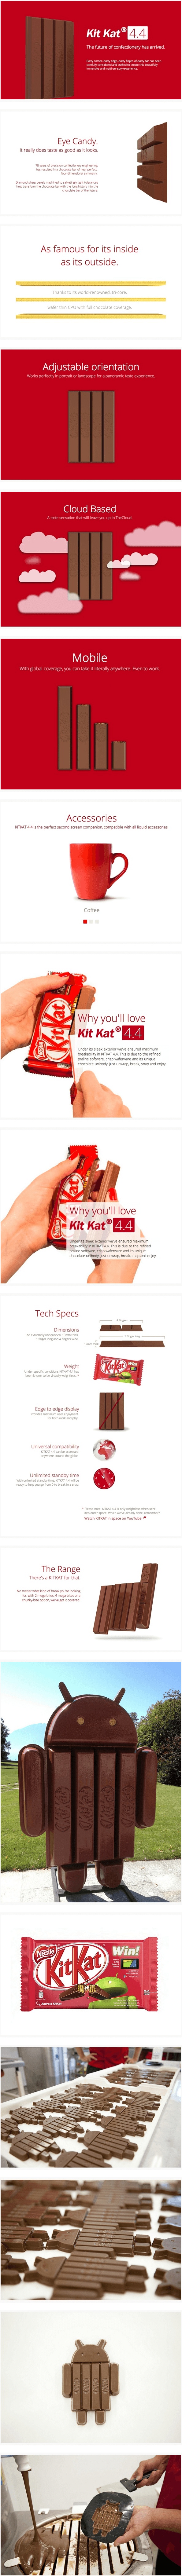 Nestle creates awesome KitKat 4.4 ads, in celebration of Android KitKat [Image]